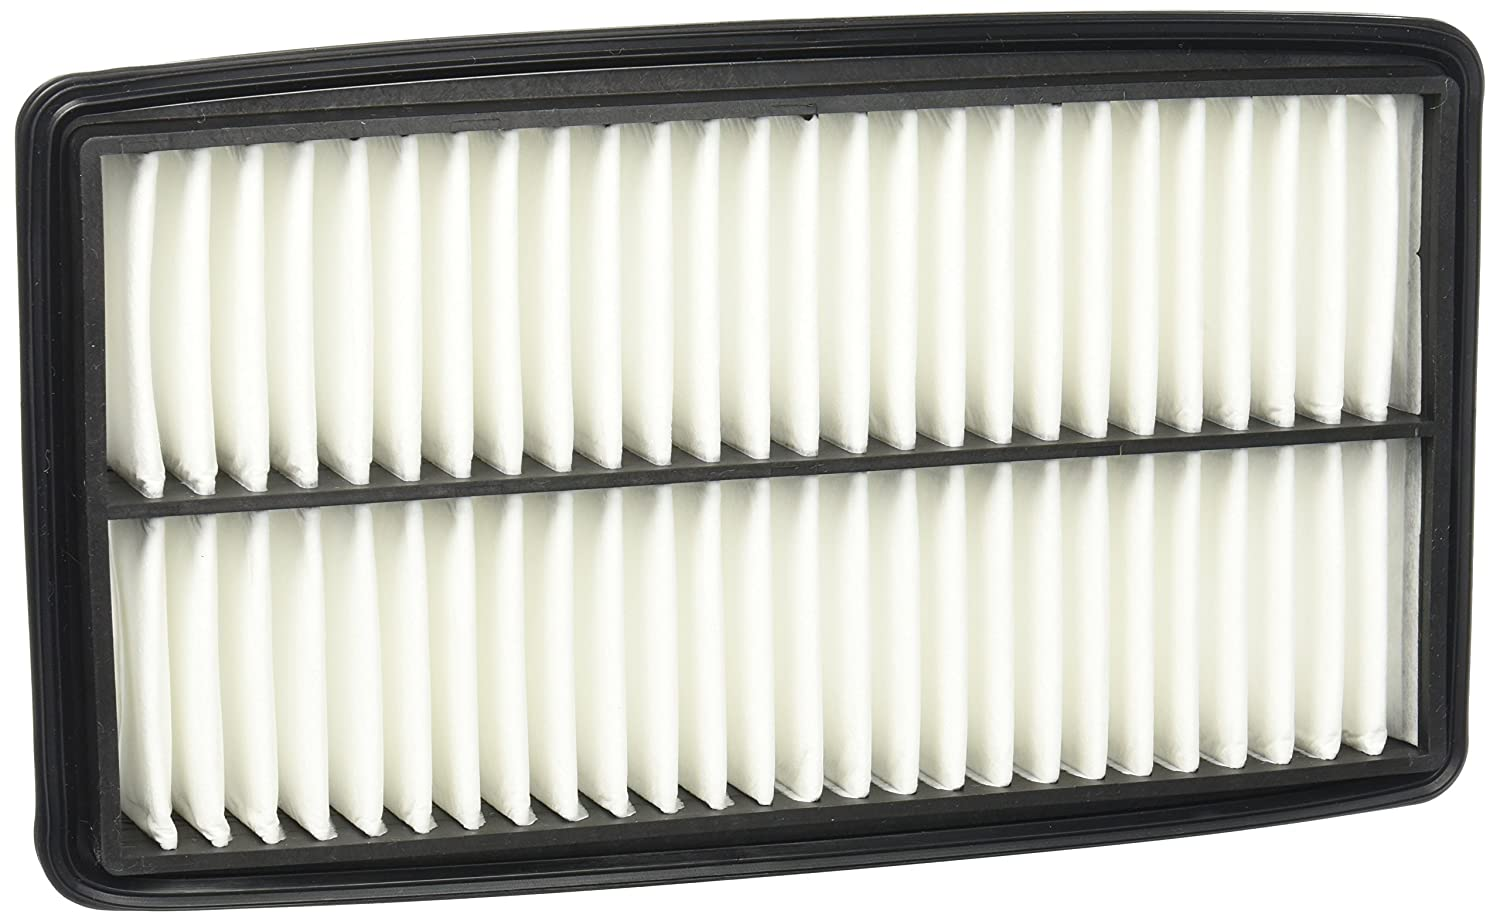 Bosch 5200WS / F00E164667 Workshop Engine Air Filter